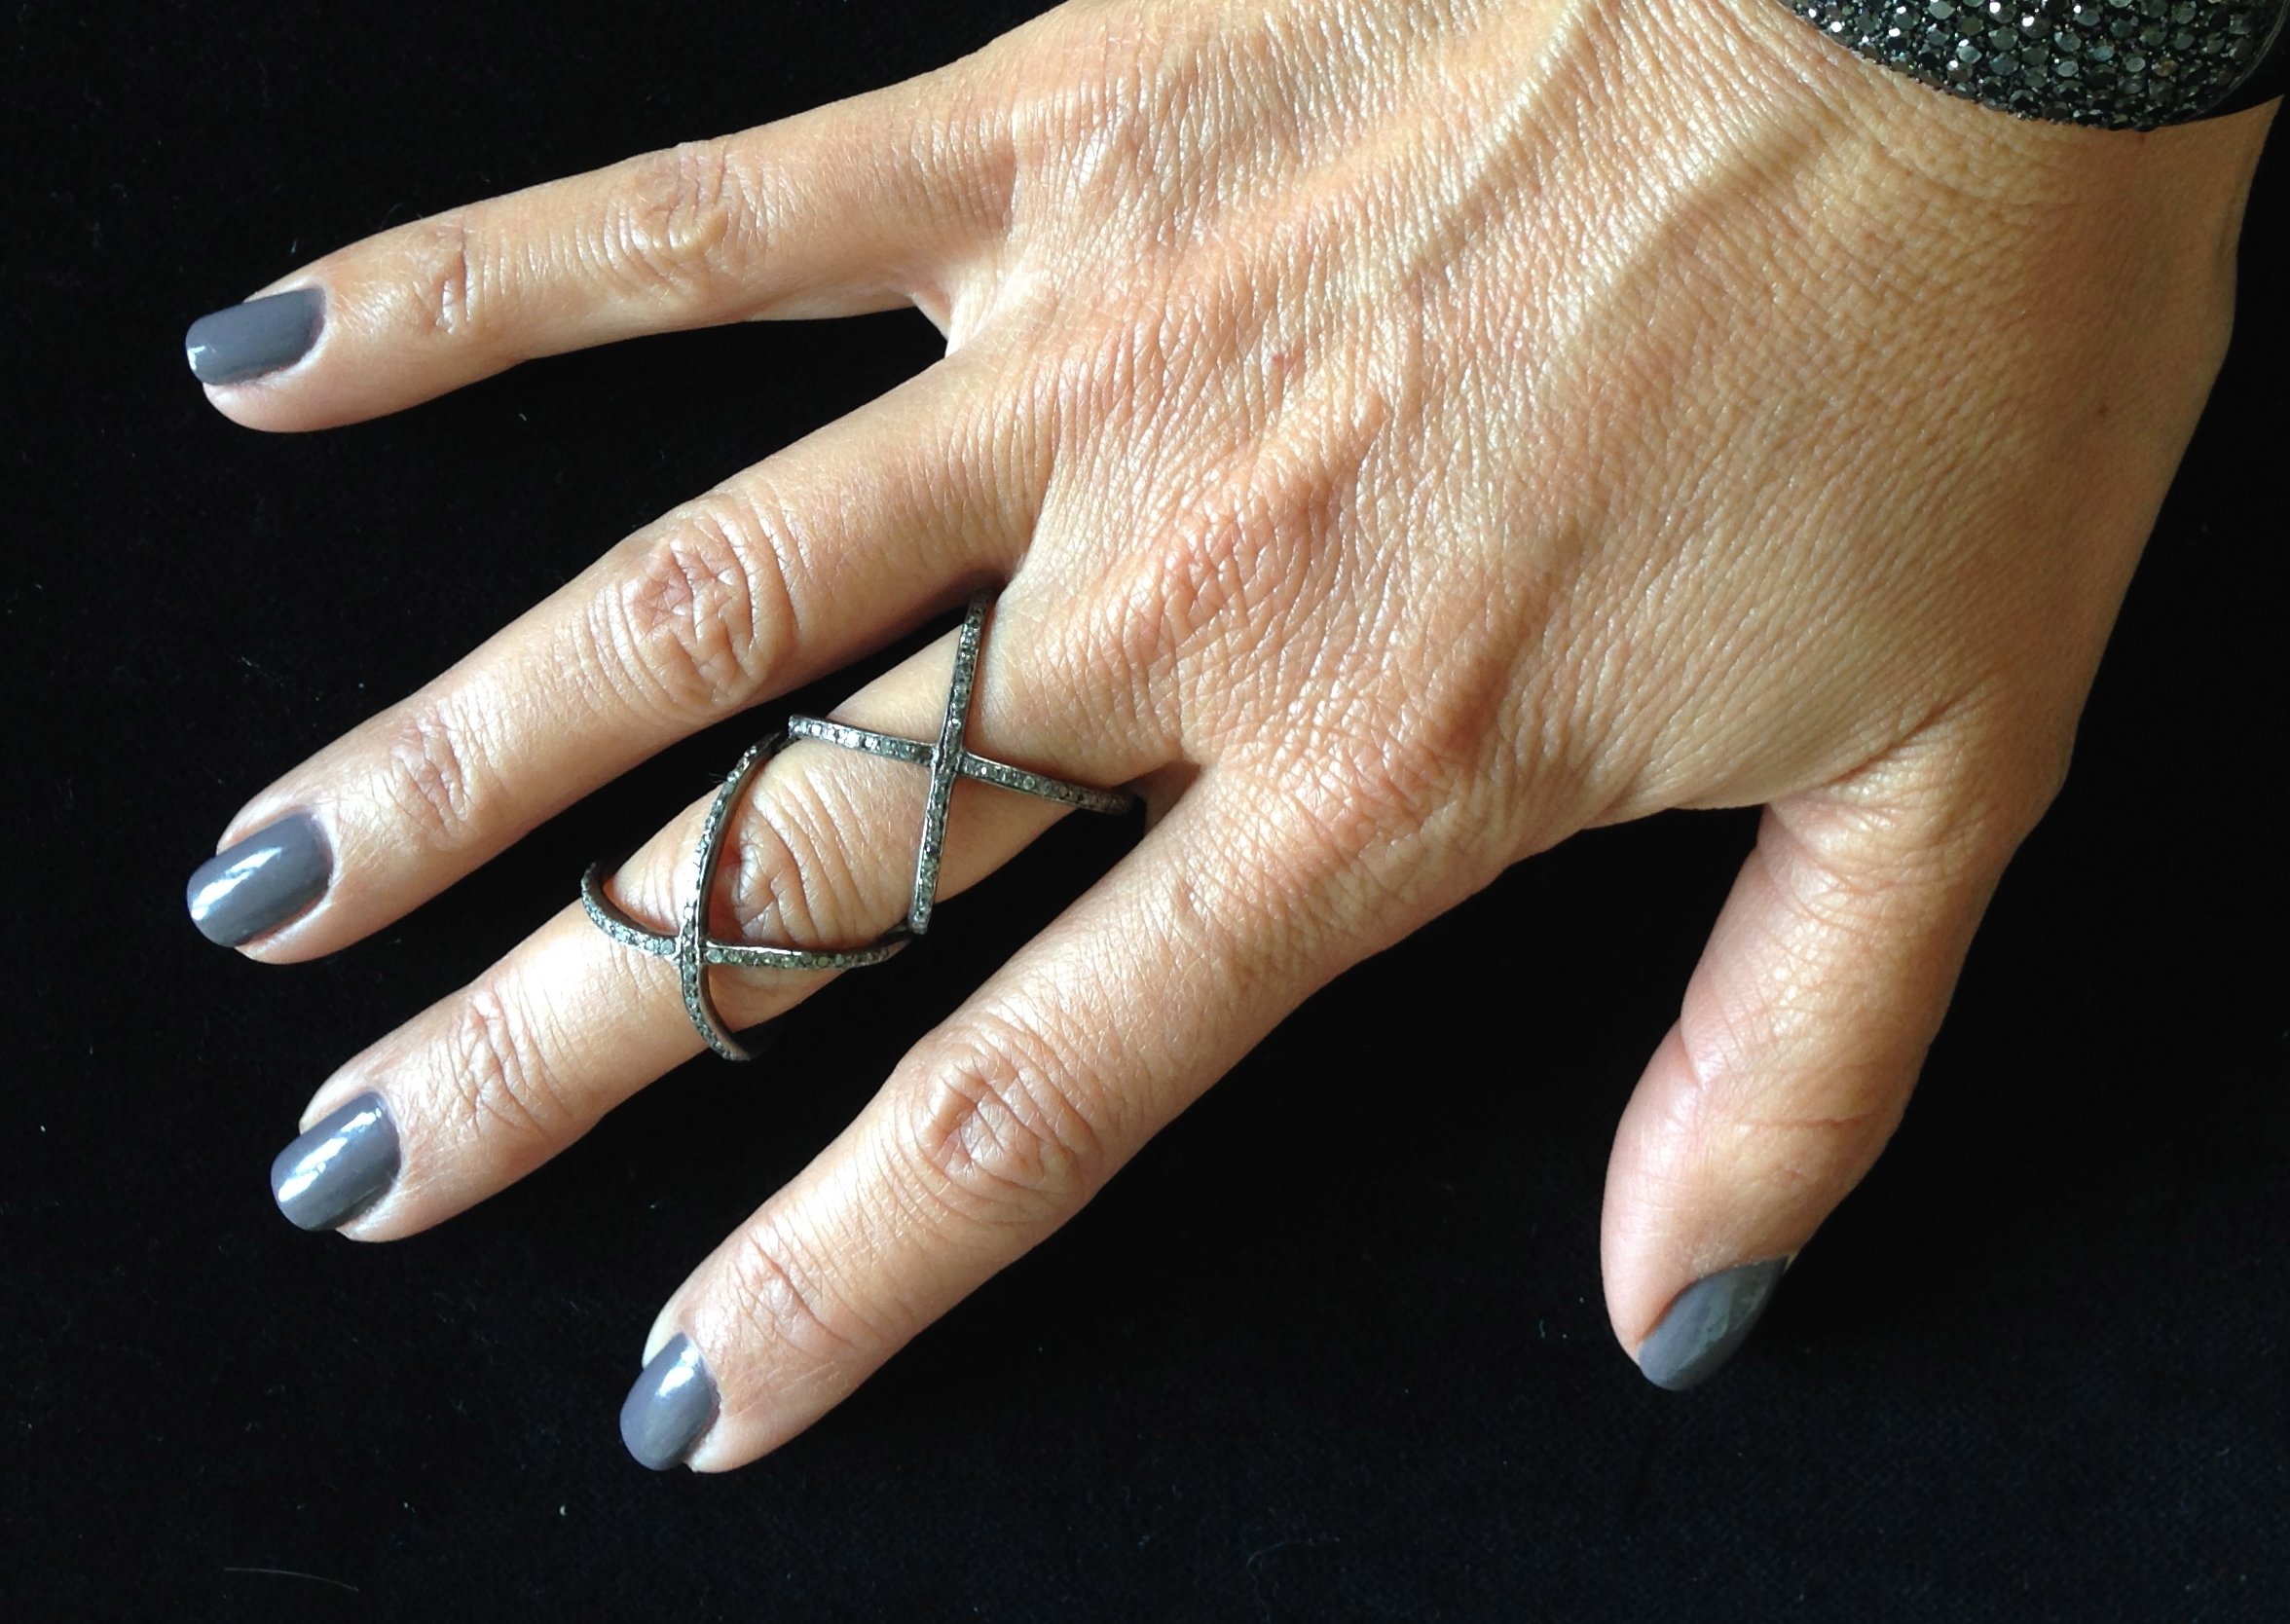 Double X ring with black diamonds, $350. Contact Kelly at  Kelly@KellyGerber.com  for sizes.